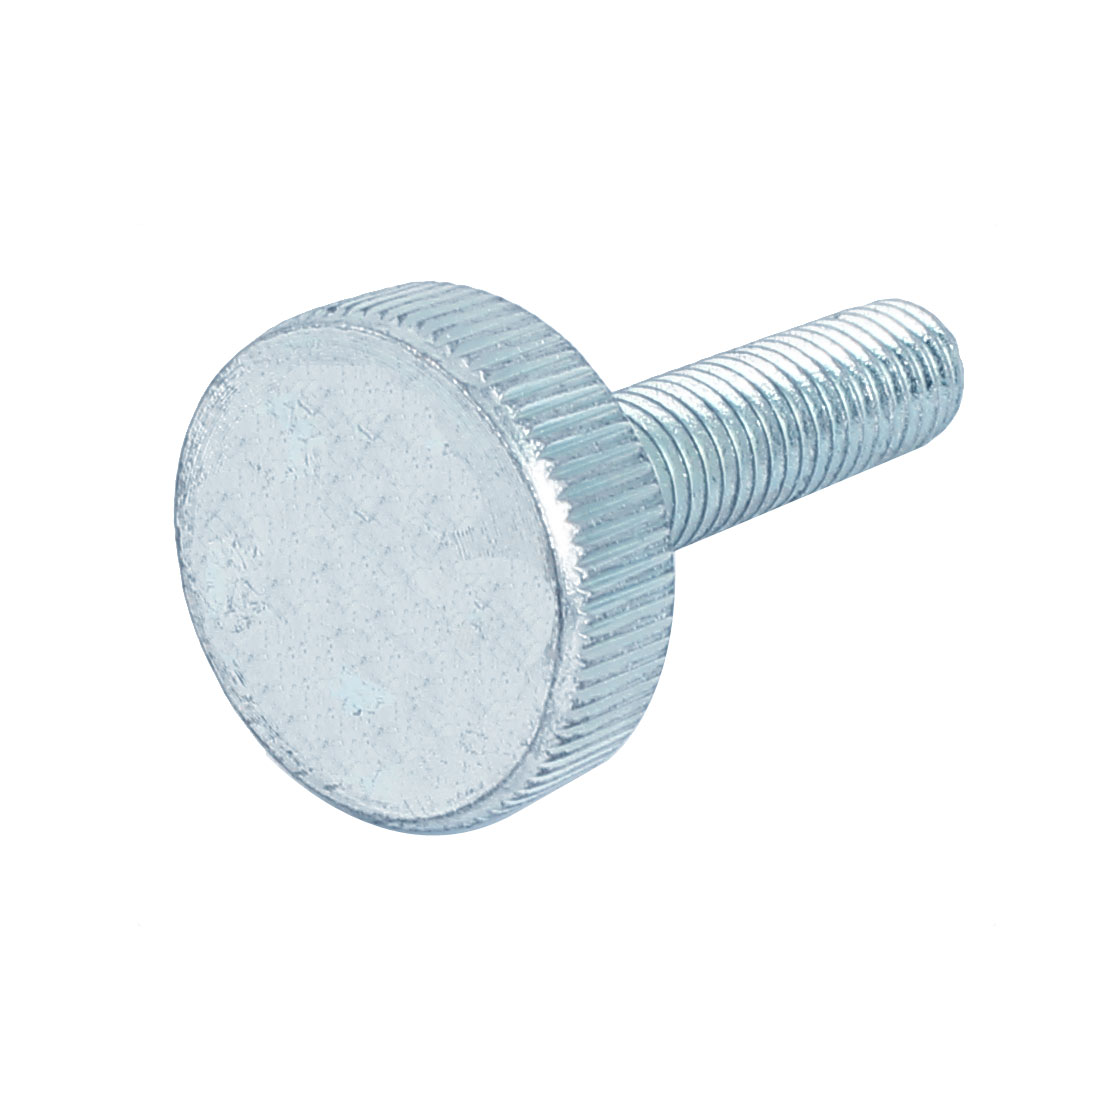 M10x40mm Thread Carbon Steel Knurled Round Head Thumb Screw Silver Blue